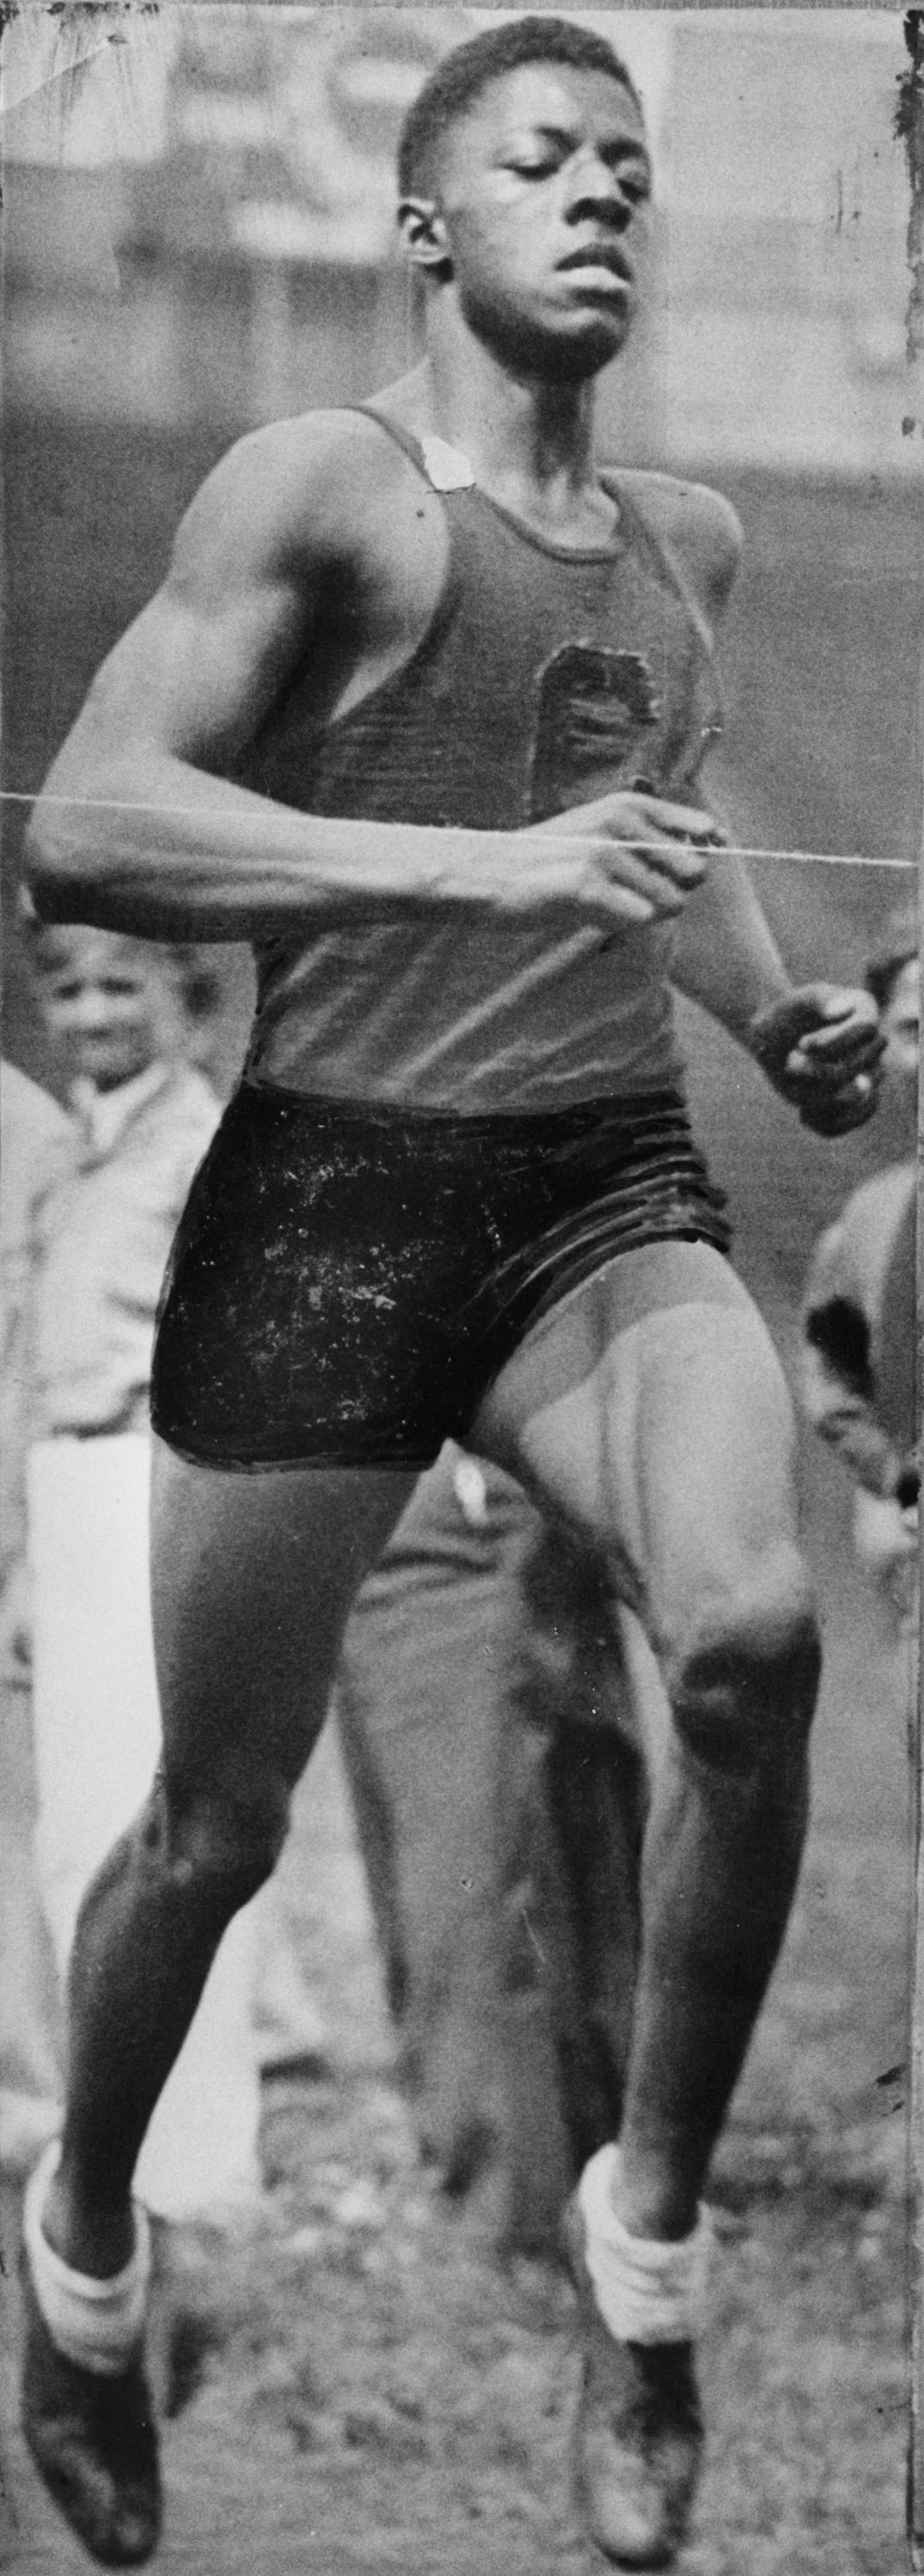 Black and white historical newspaper photo of John Woodruff running in the 800-meter race in the 1936 Olympics in Berlin, Germany